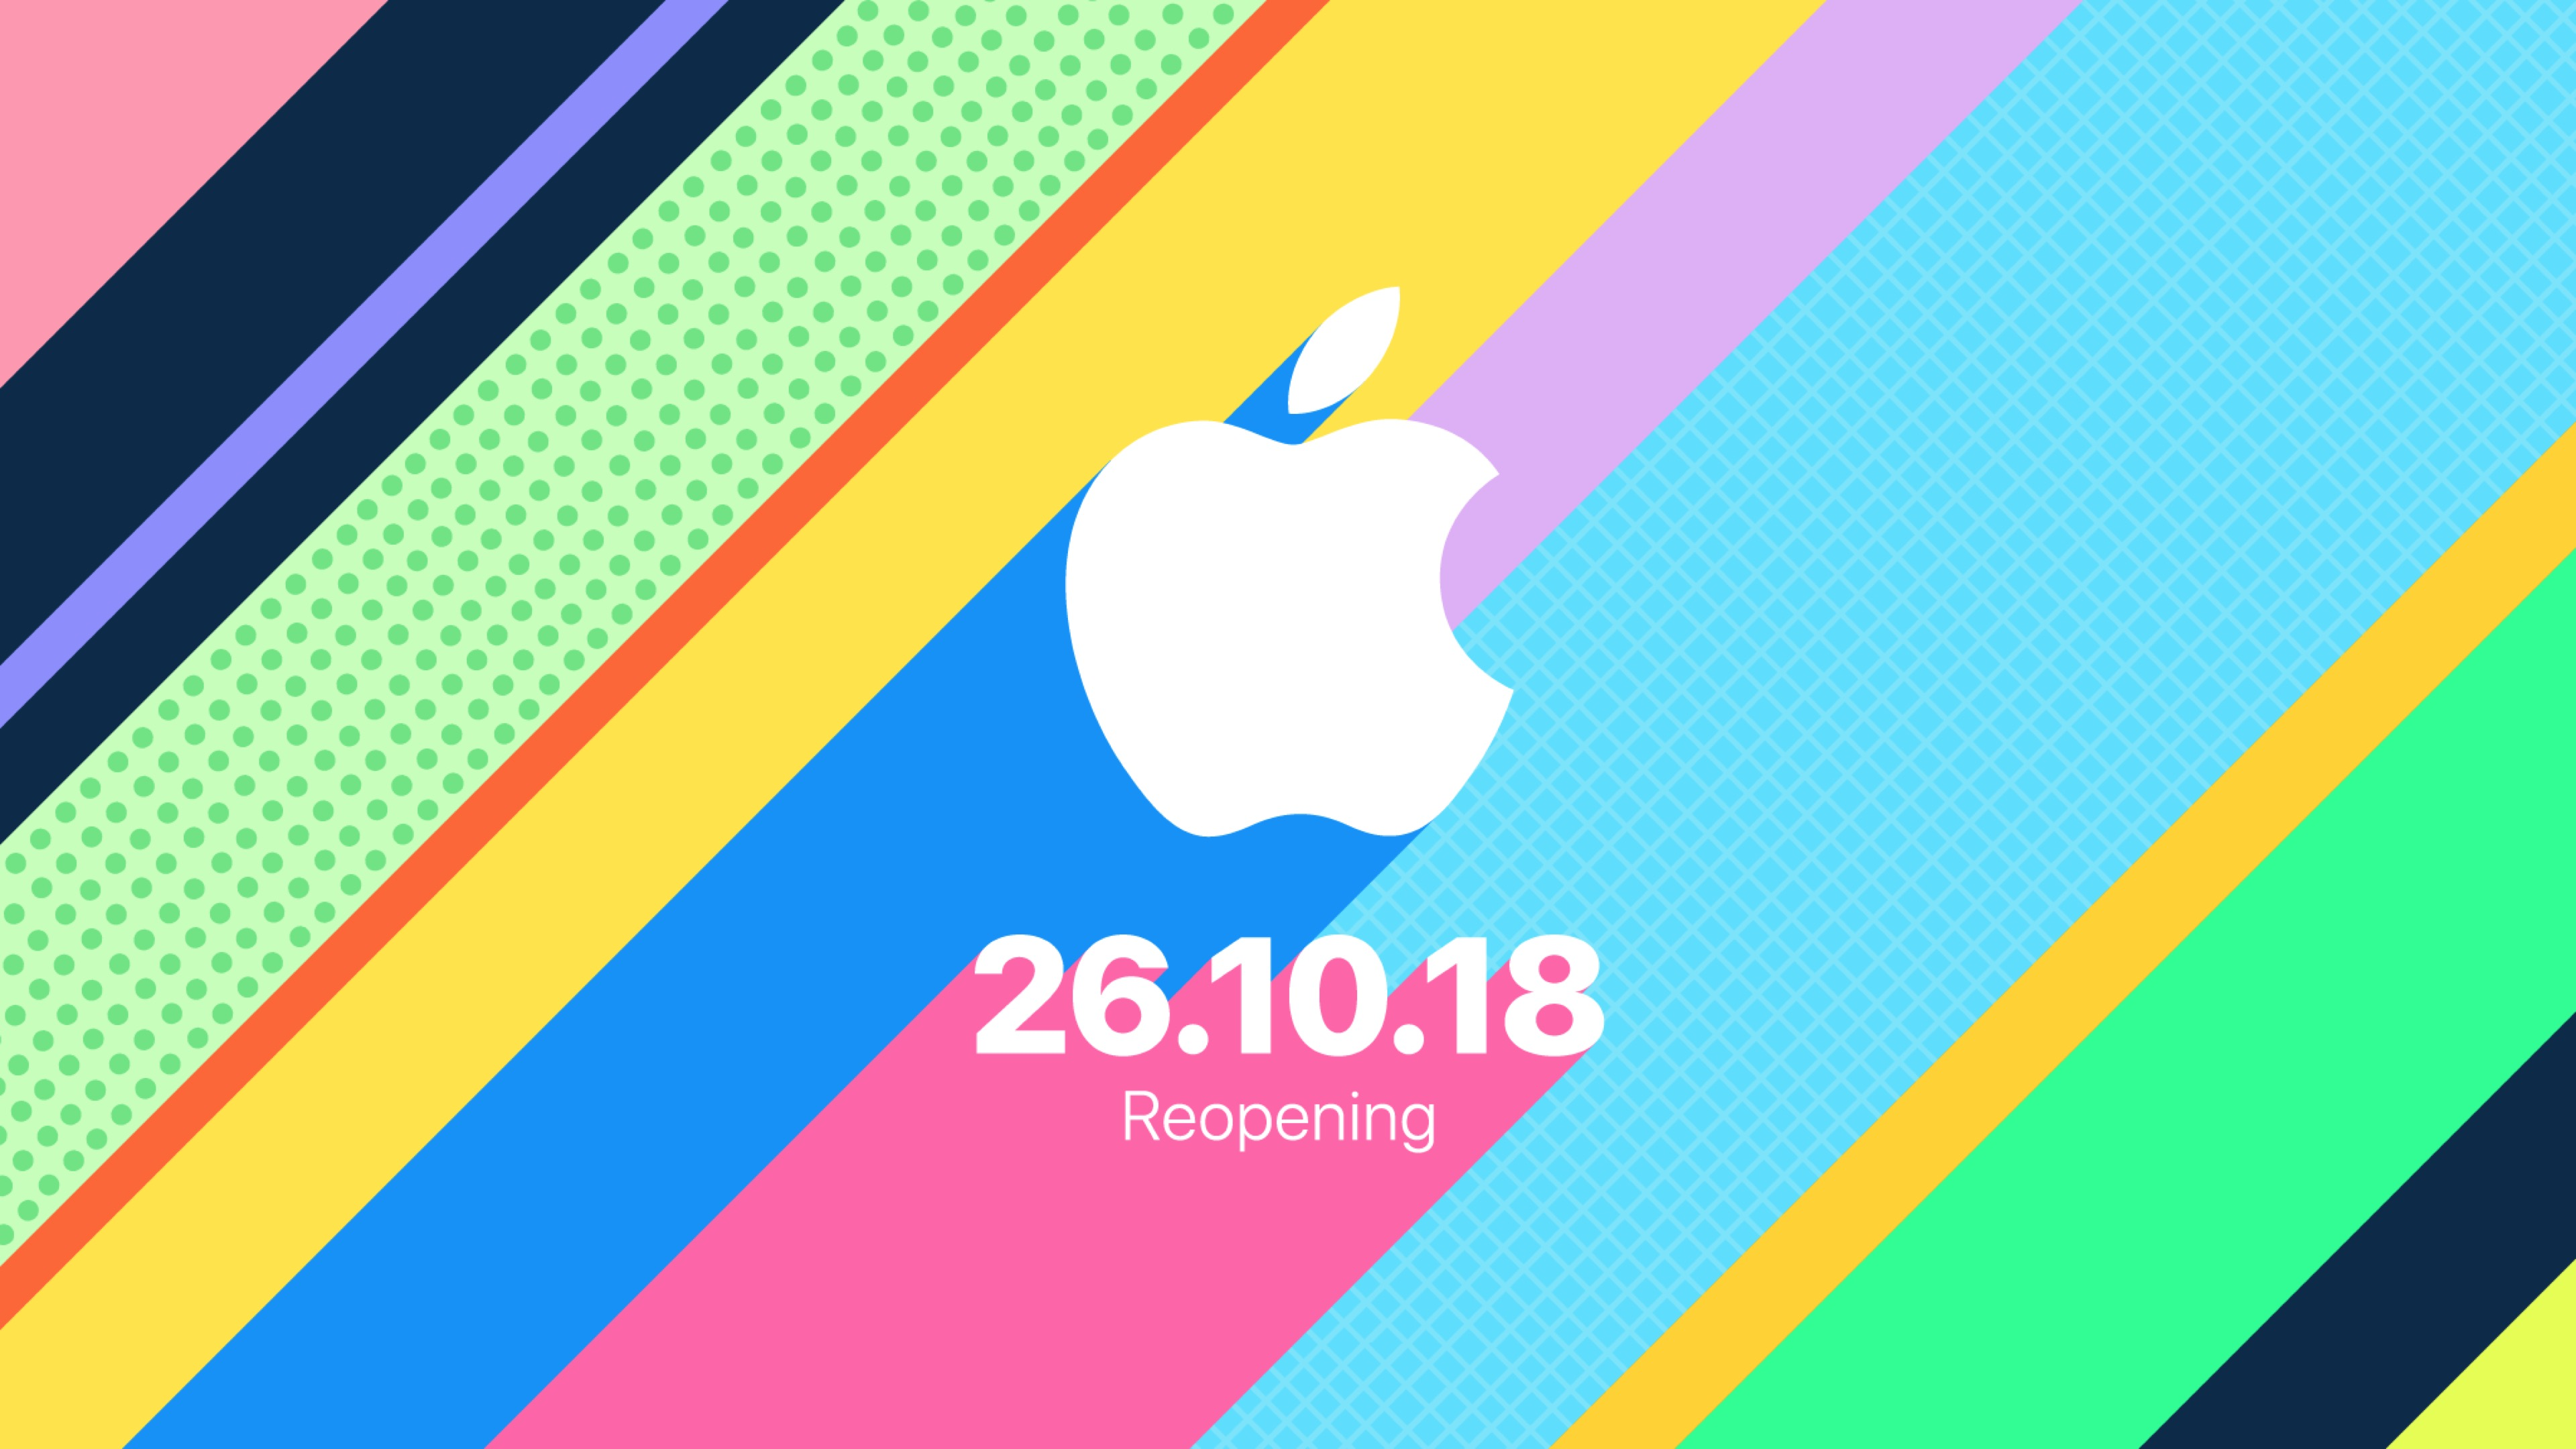 Apple Covent Garden reopening on iPhone XR launch day following renovations